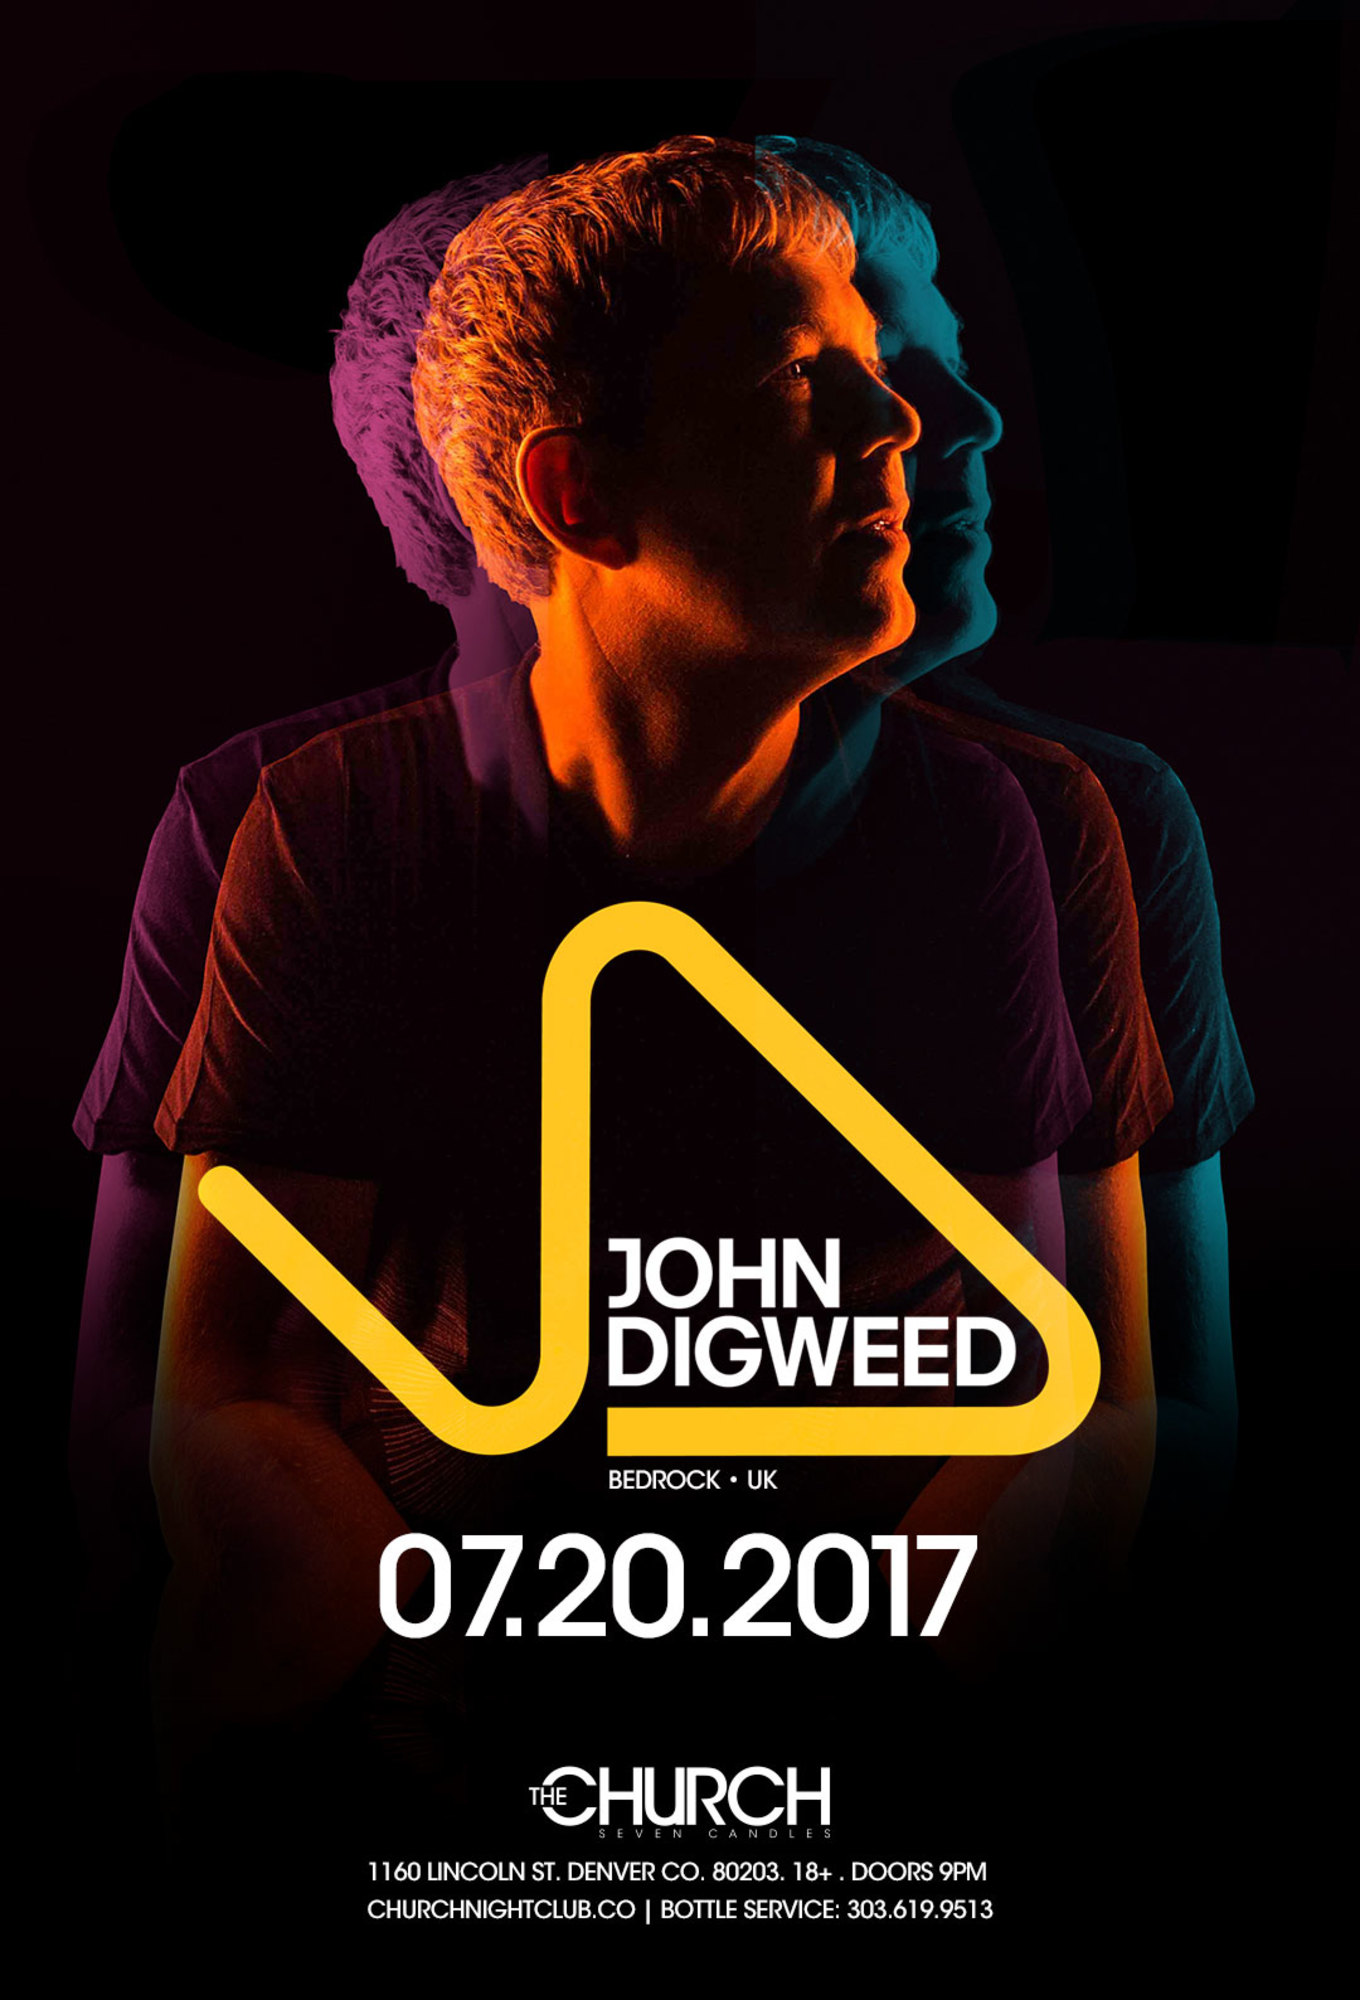 sasha & john digweed communicate songs